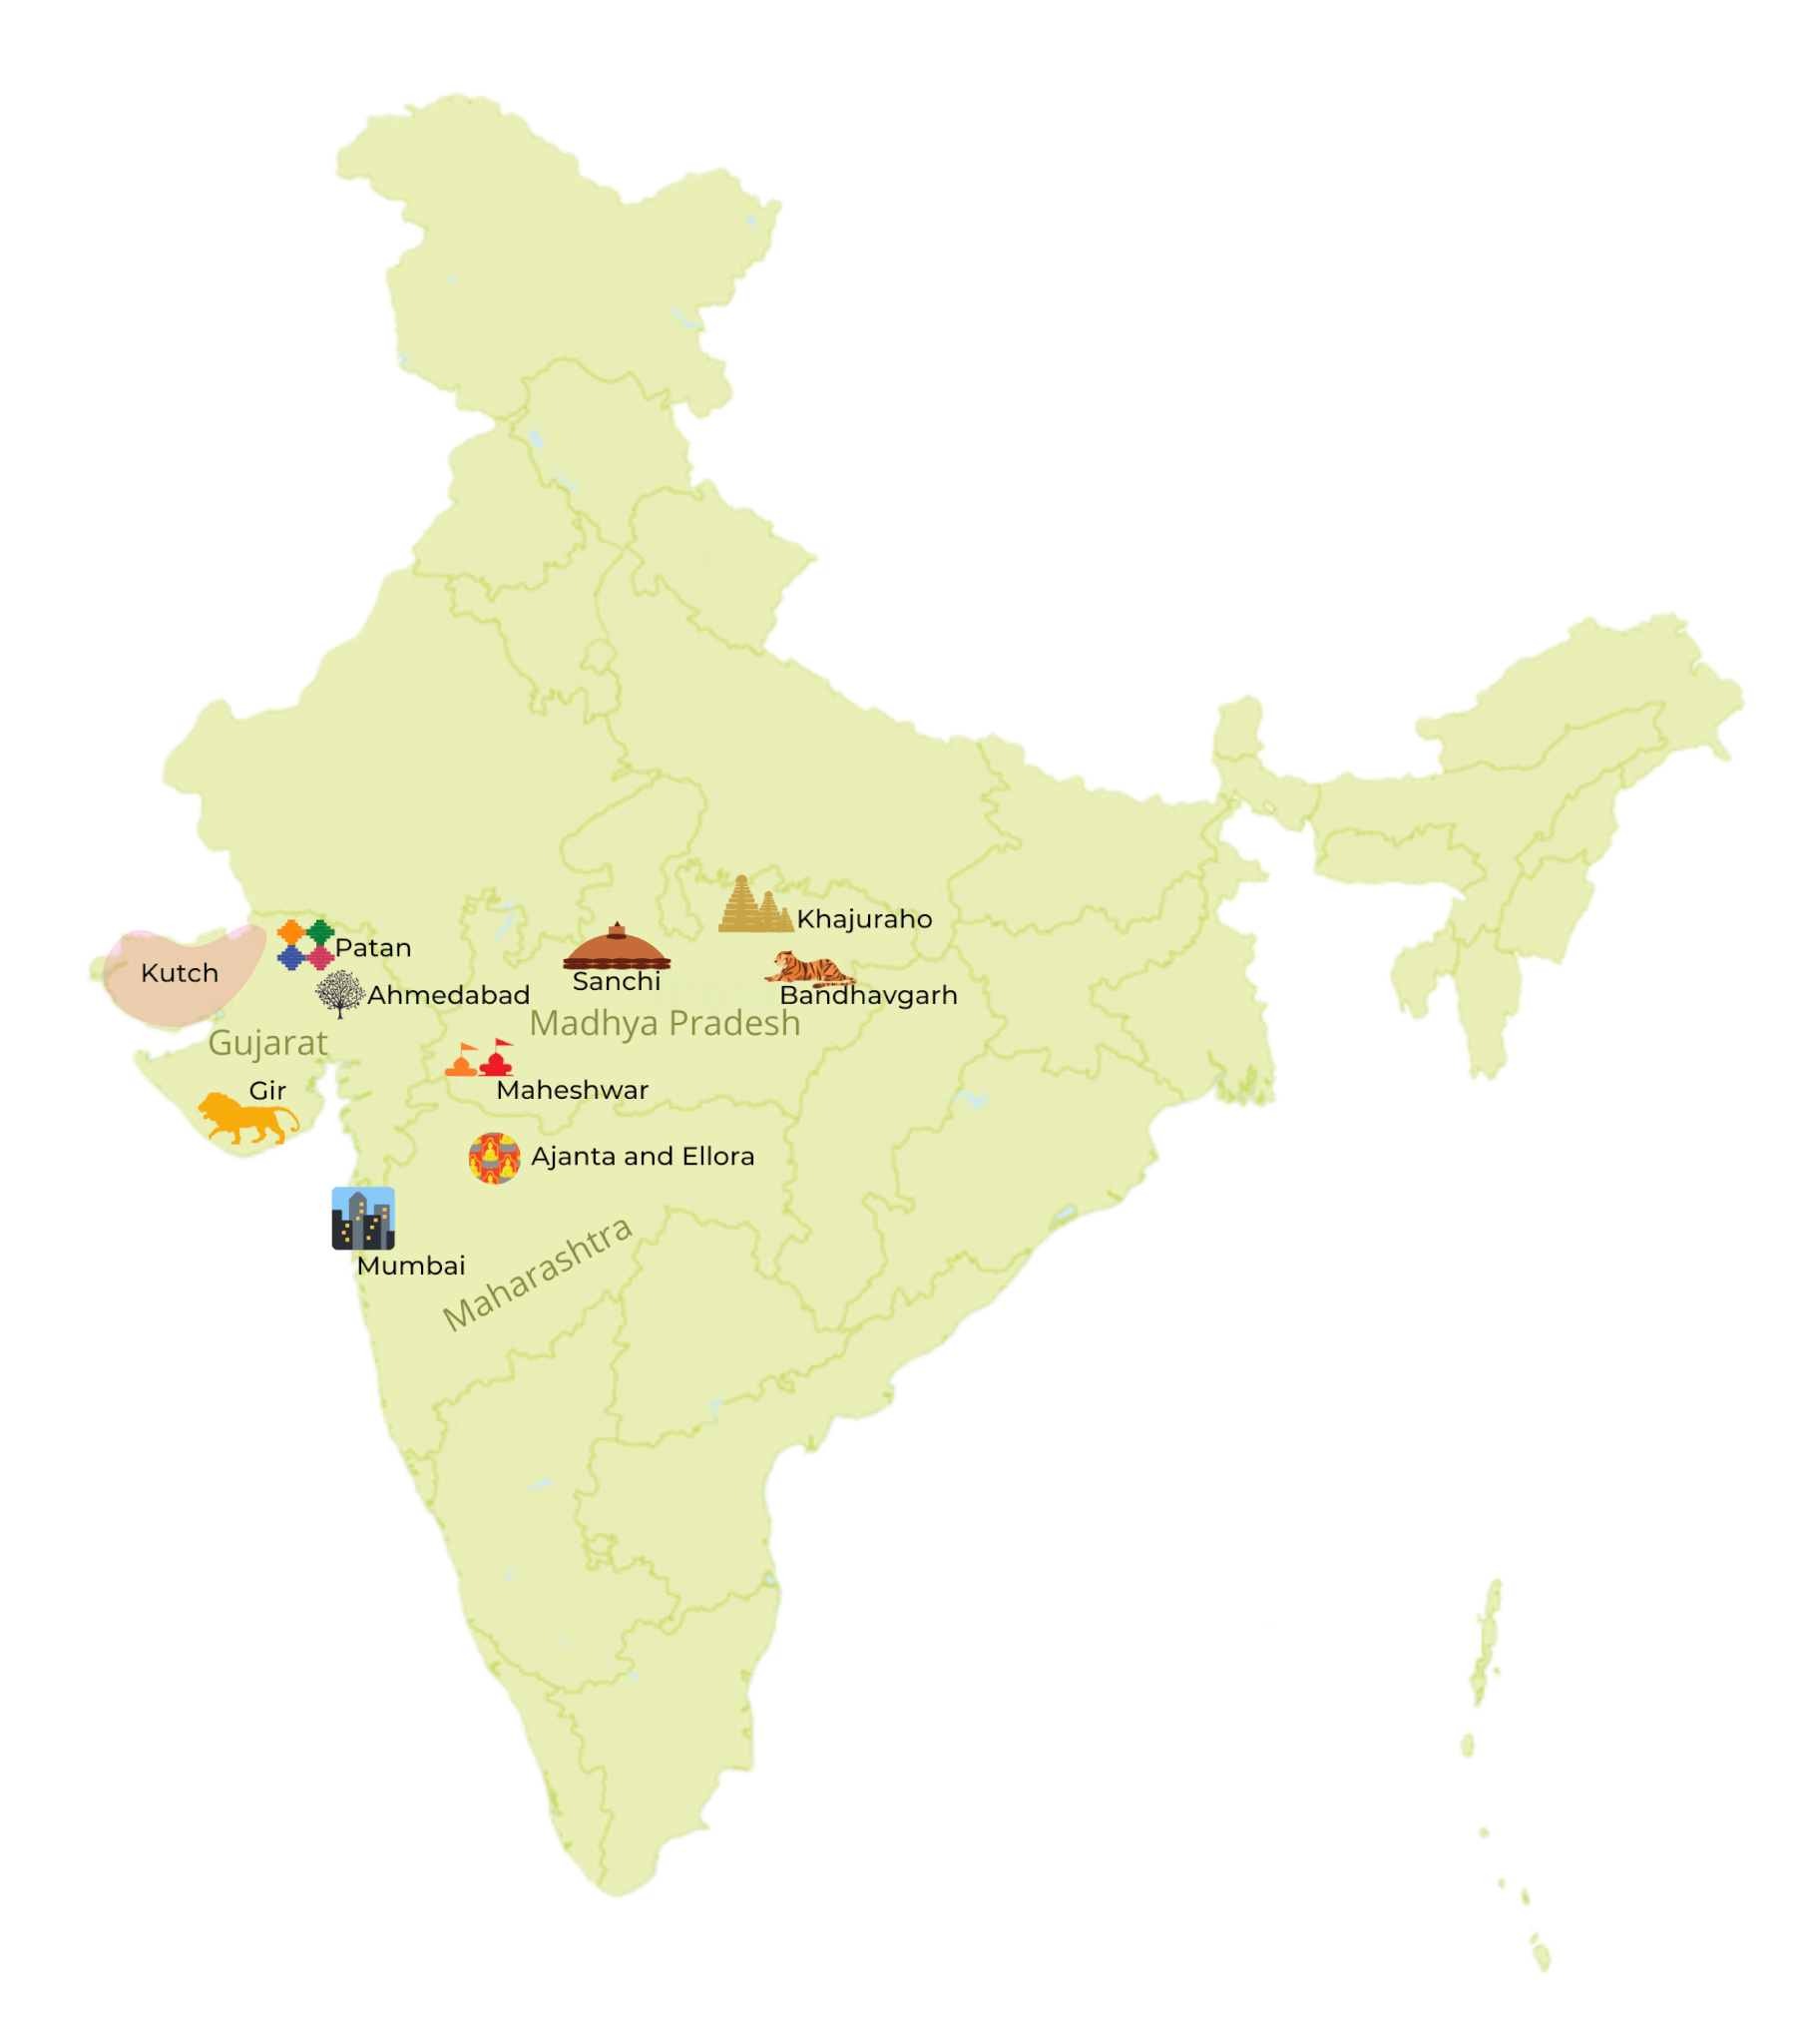 West and Central India, travel destinations map